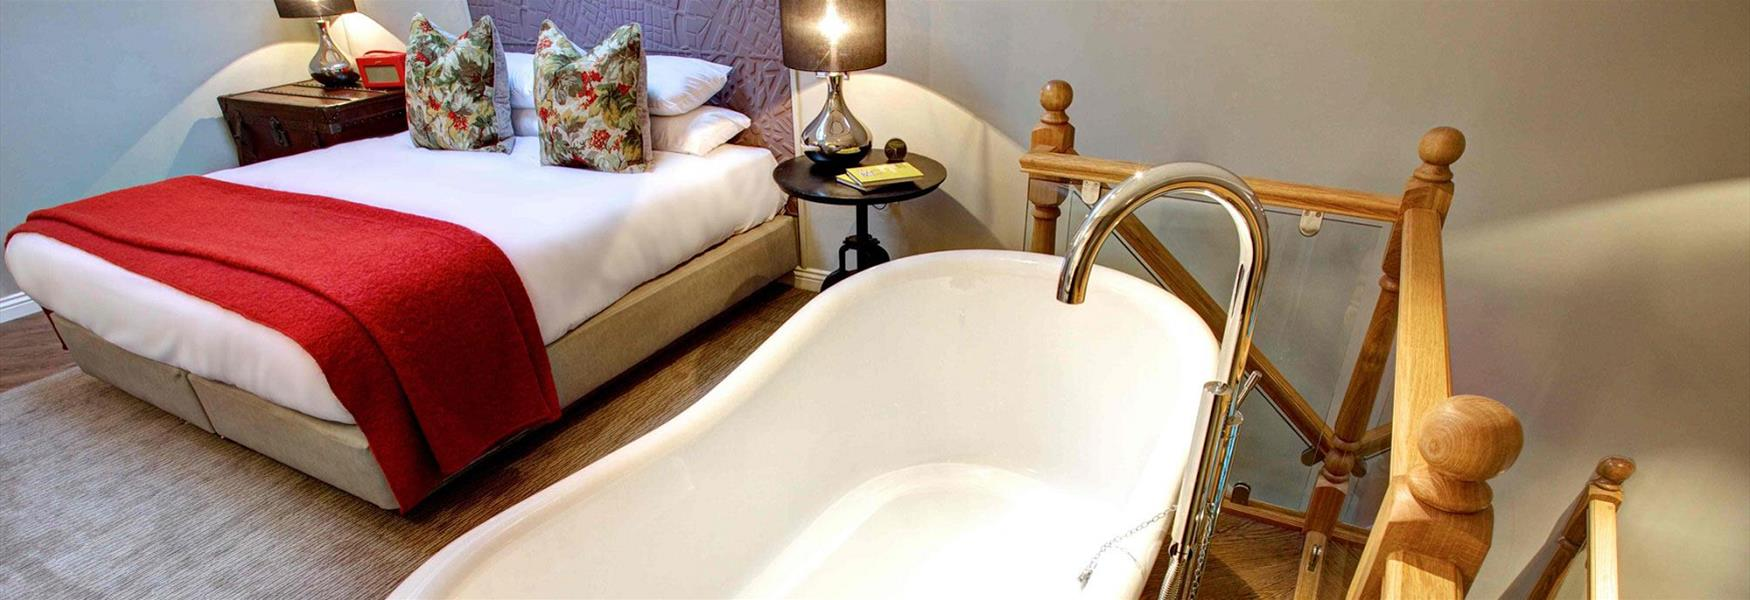 Boutique Hotels in Cheshire